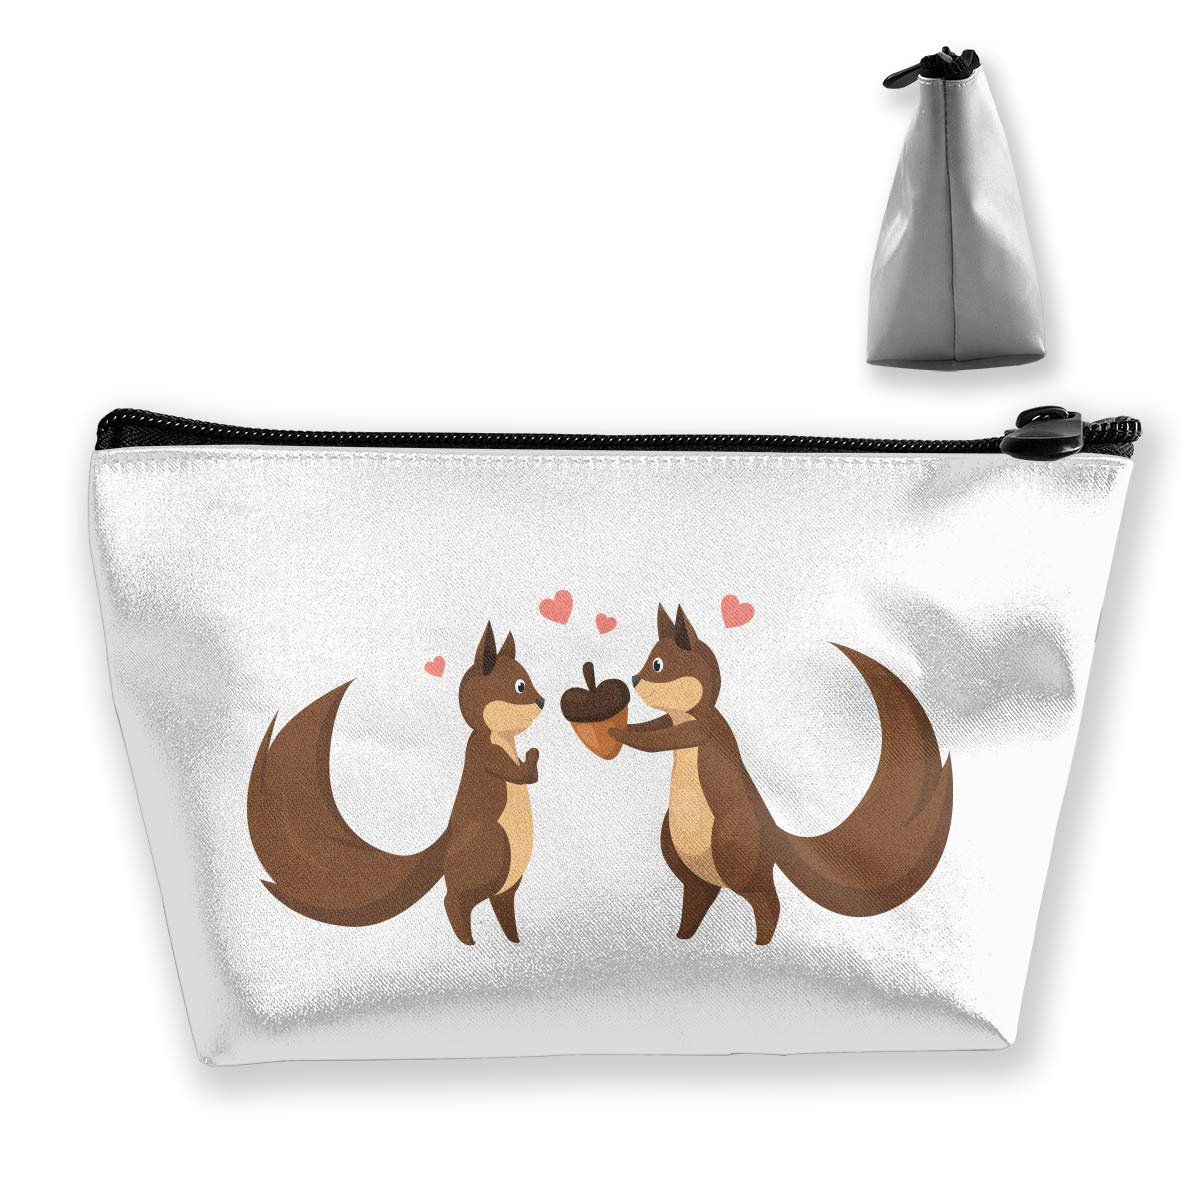 Trapezoid Toiletry Pouch Portable Travel Bag Squirrel Love Zipper Wallet